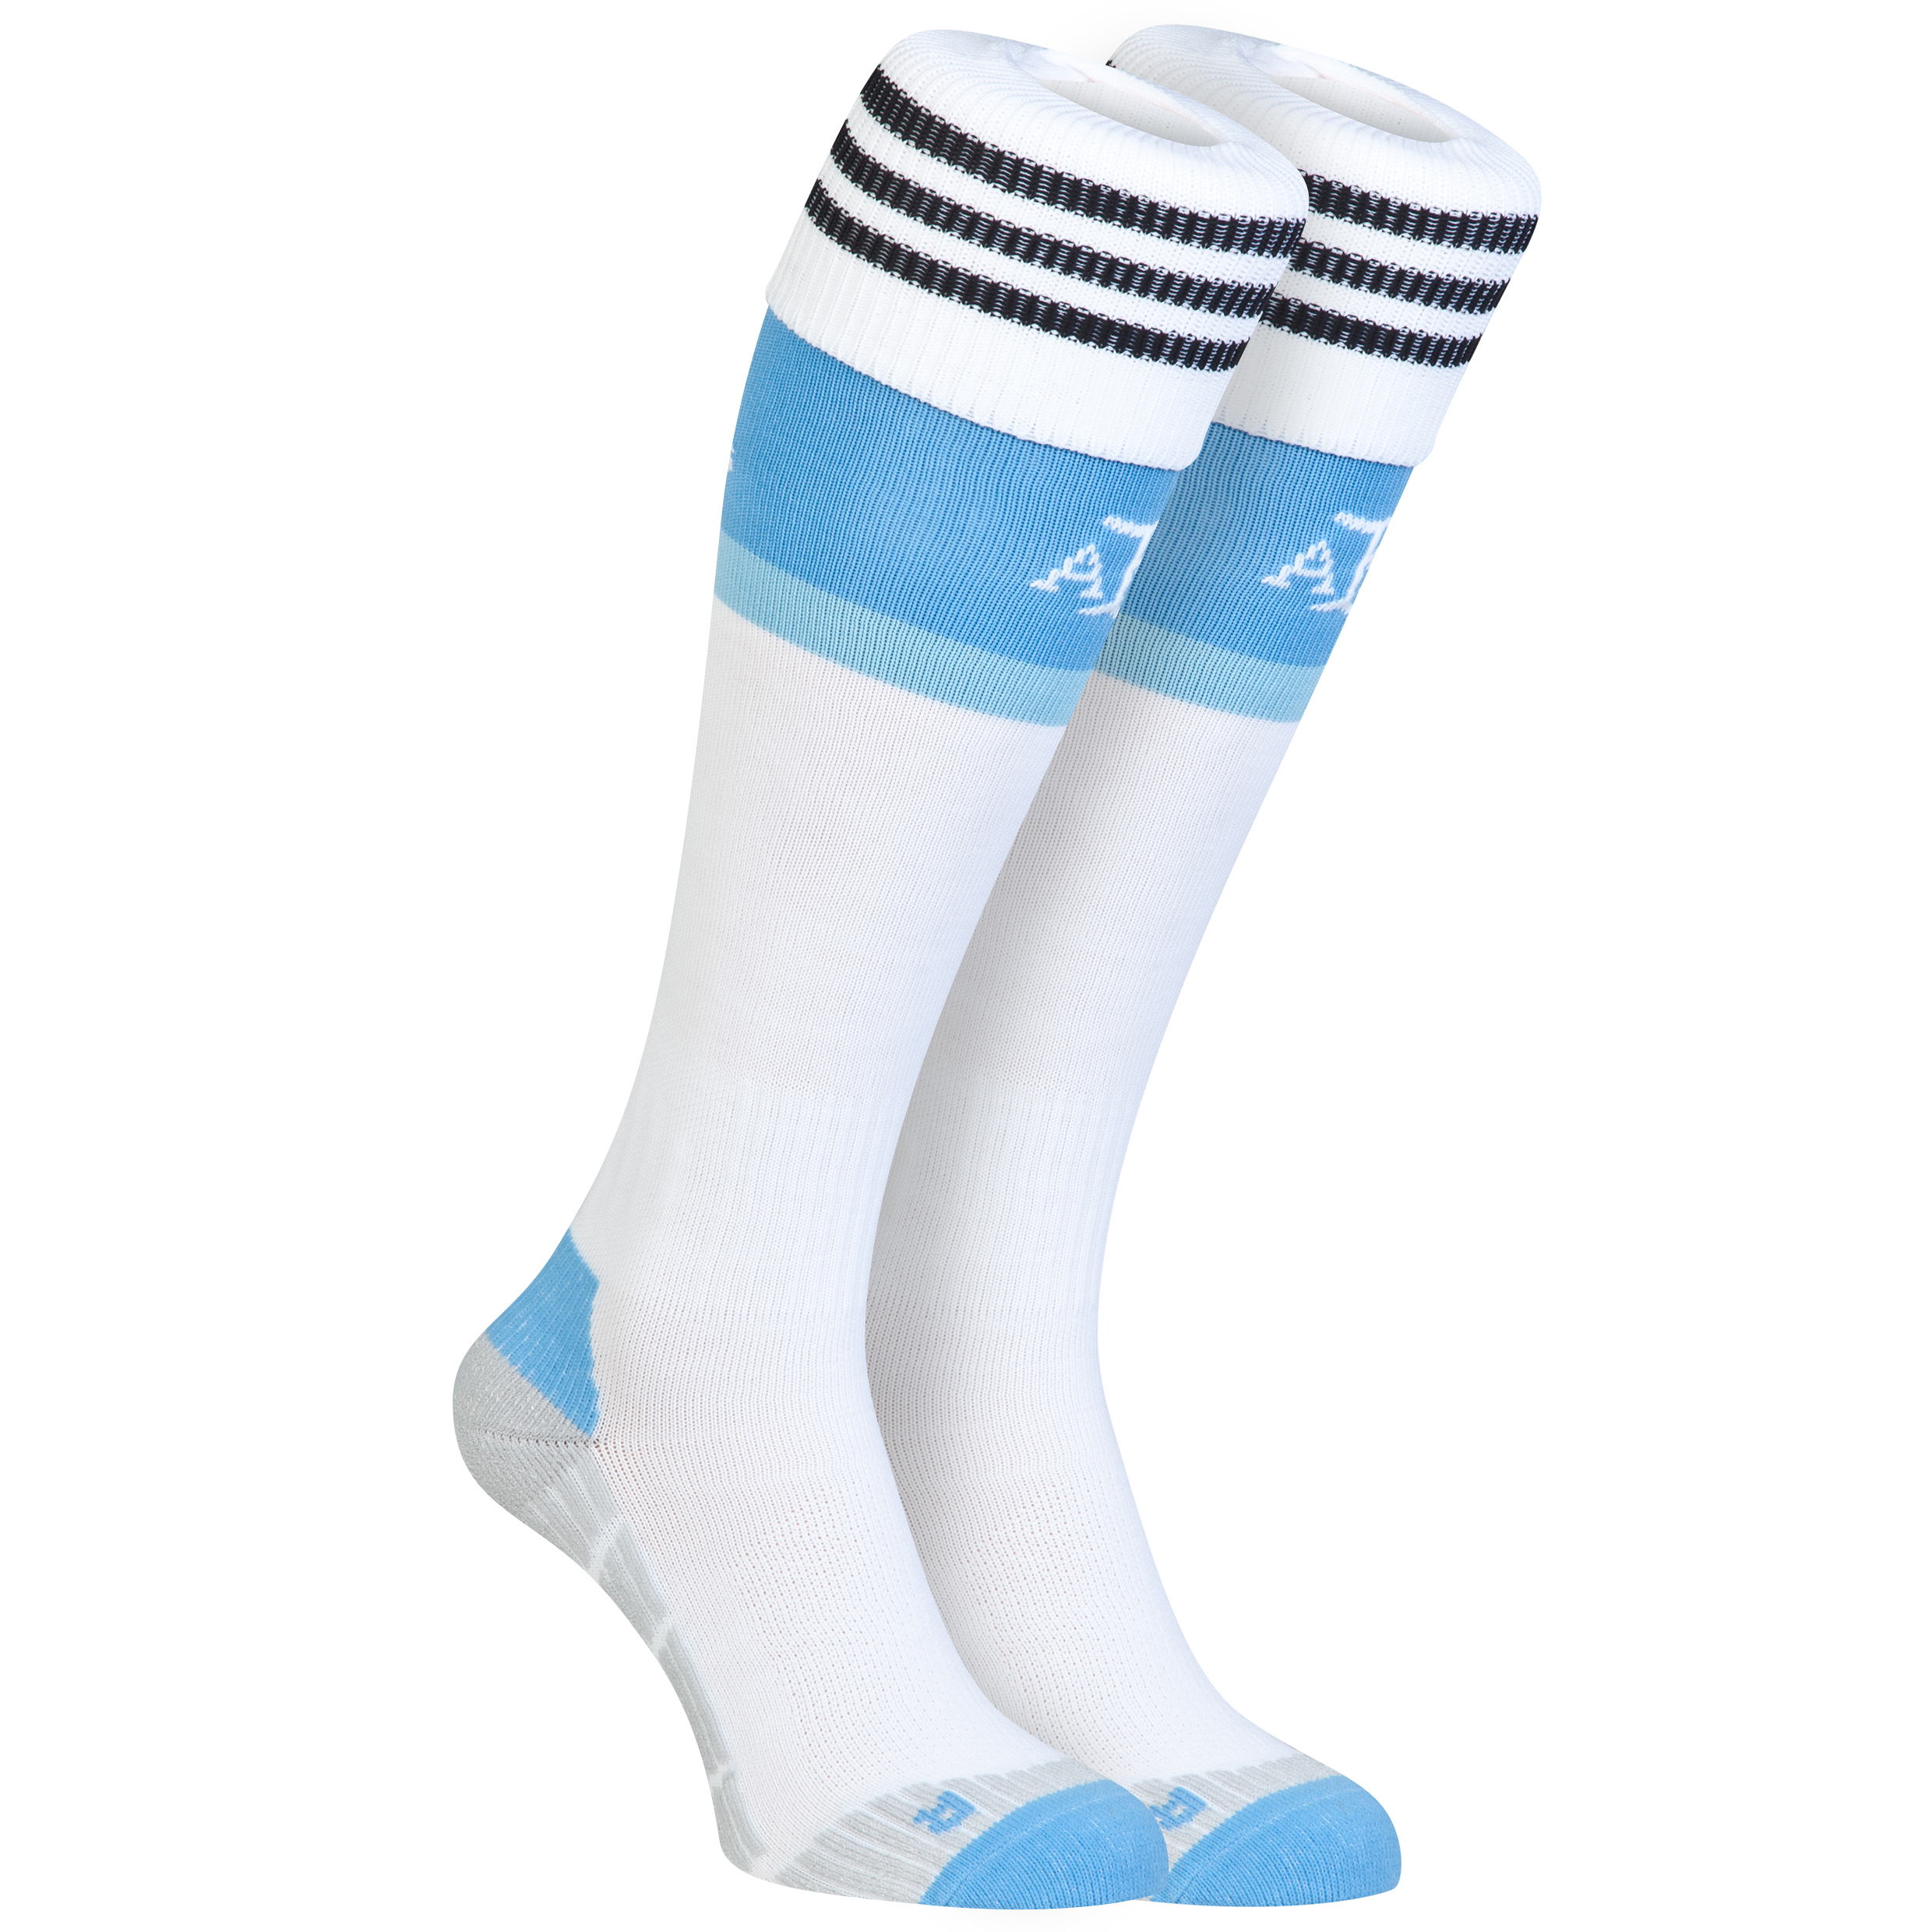 Argentina Home Socks 2014